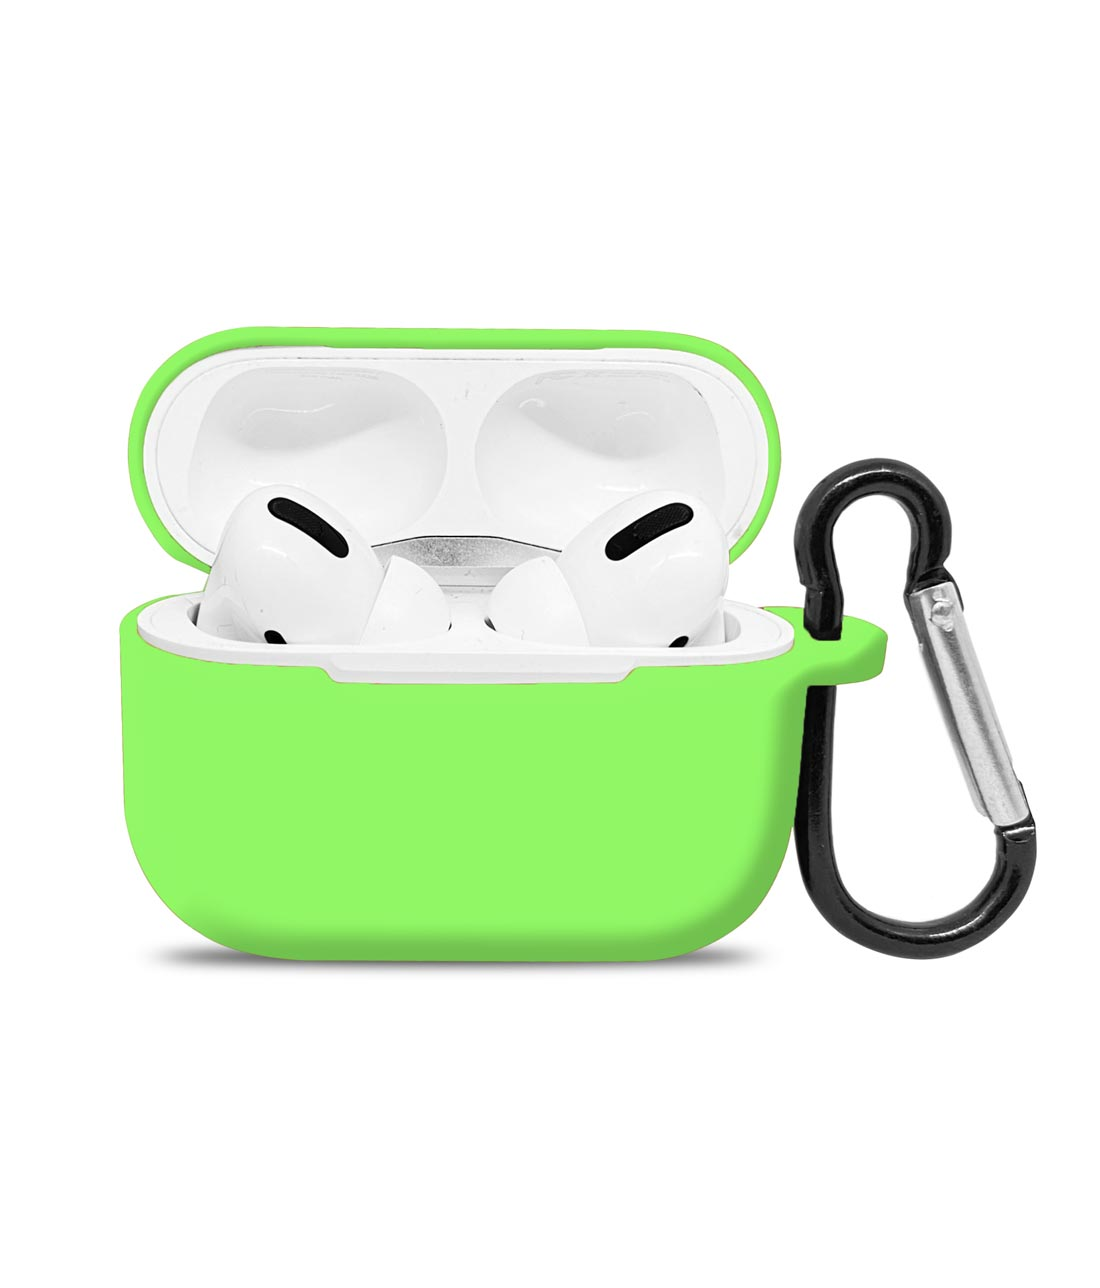 Silicone Case Leaf Green - AirPods Pro  Case